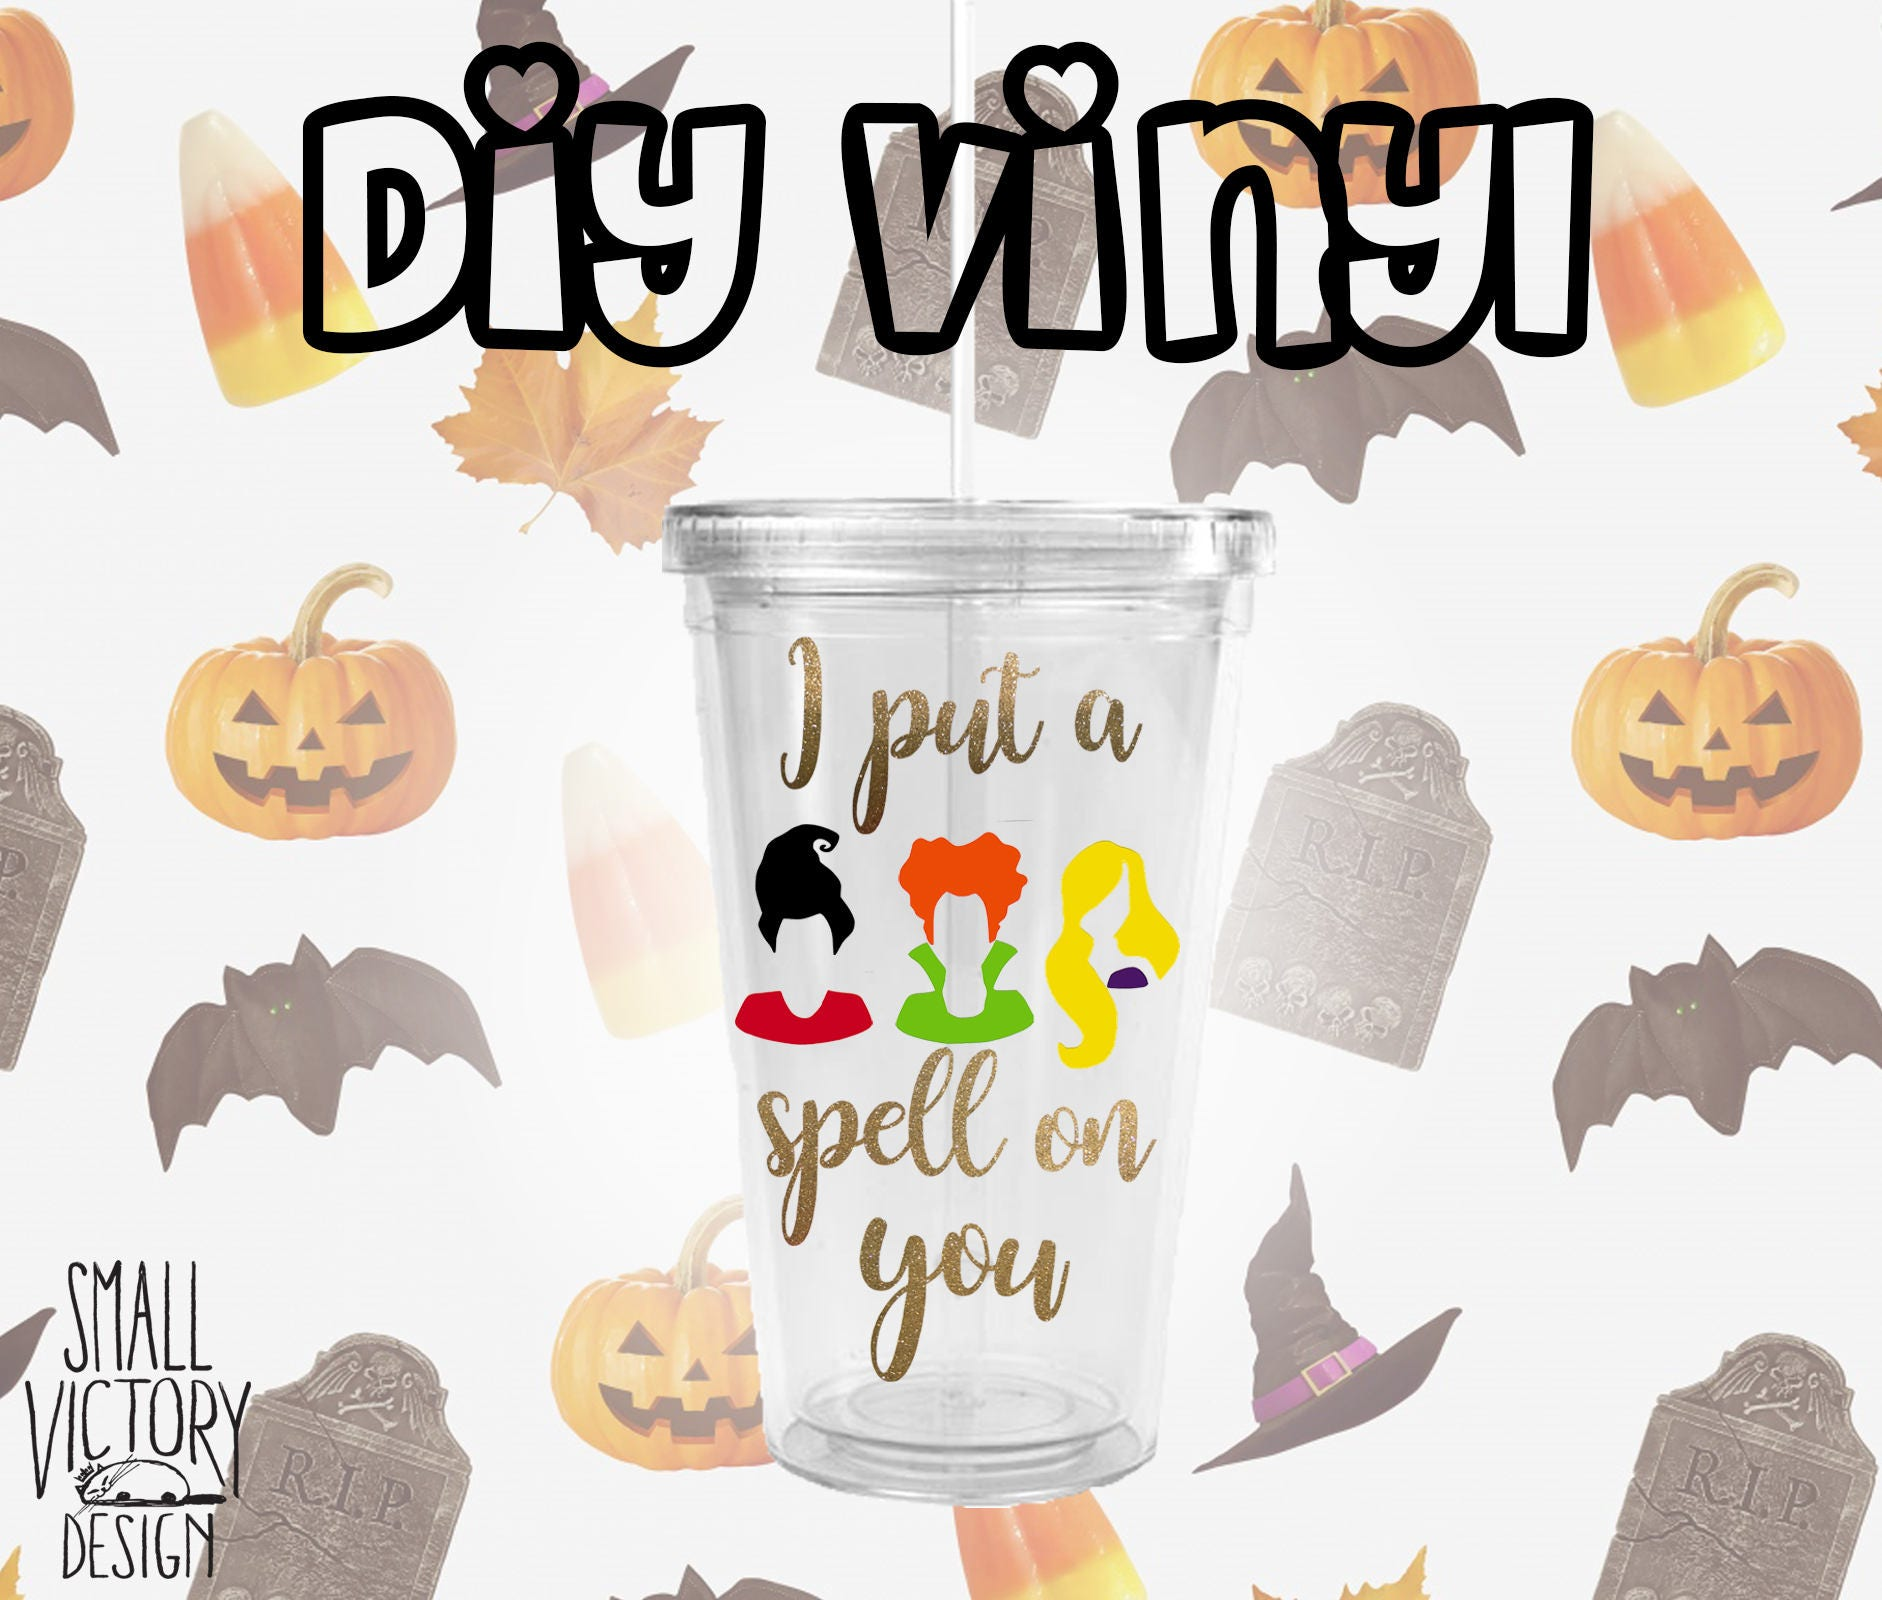 Uncategorized Diy Vinyl Stickers i put a spell on you hocus pocus diy vinyl decals vinyl